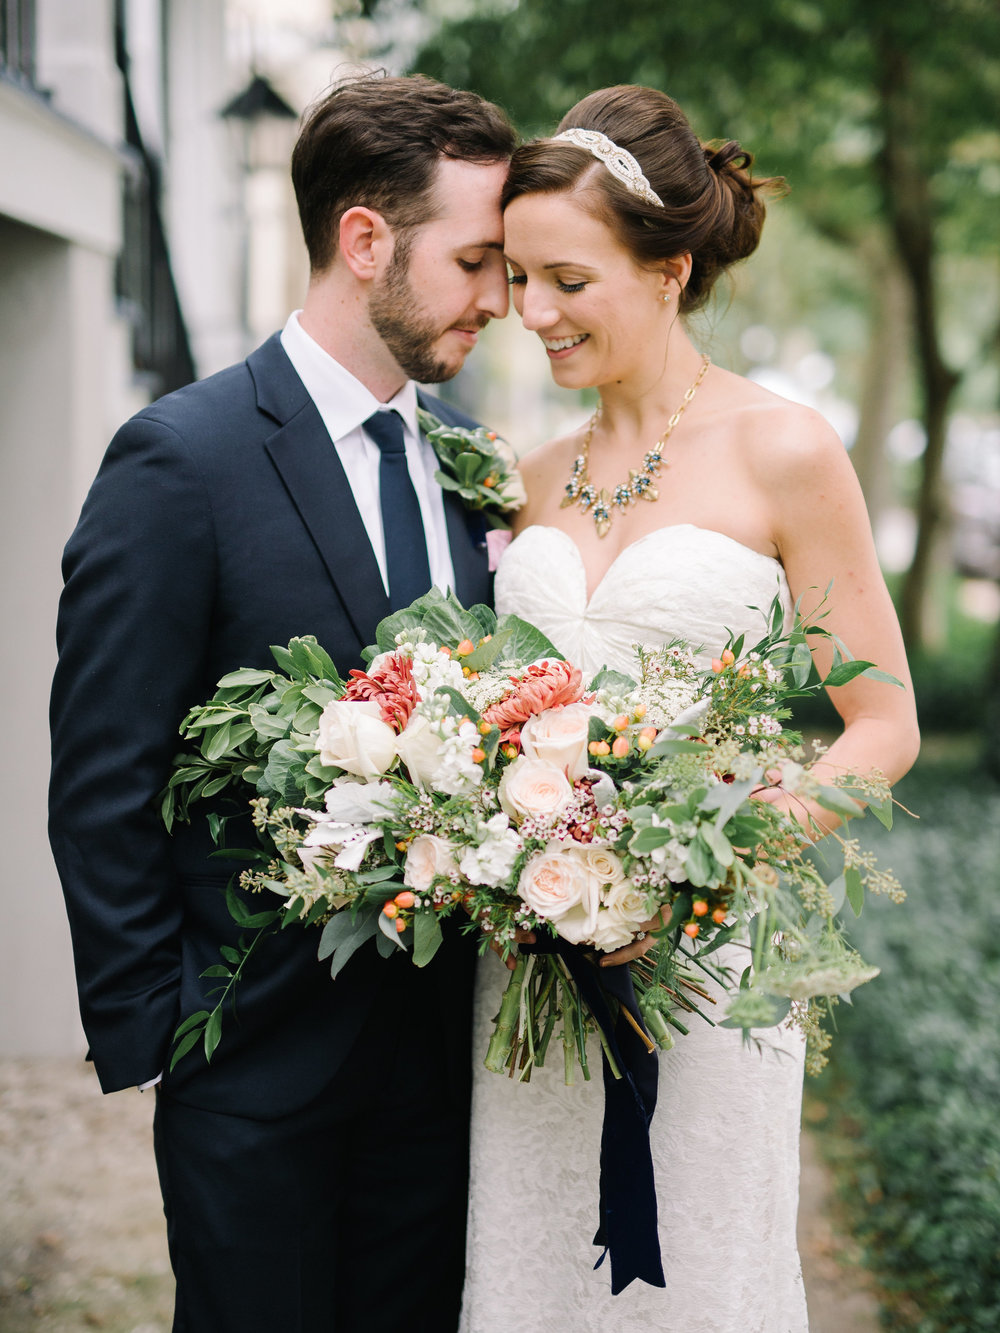 AMBER'S WOODLAND SAVANNAH WEDDING AT THE MORRIS CENTER